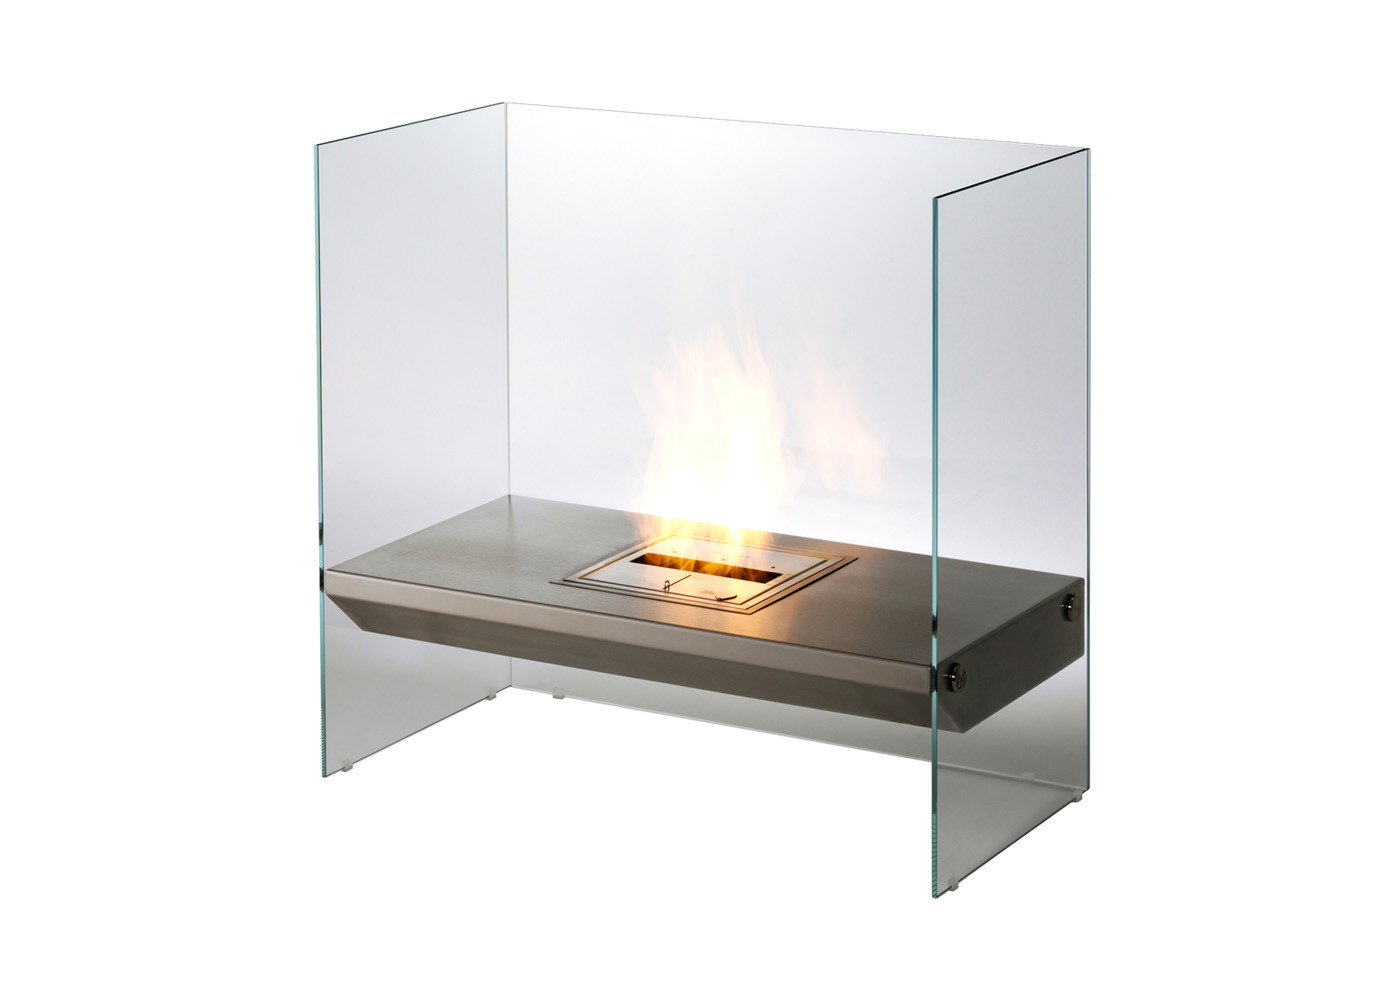 ecosmart-4630-igloo-flame-copy.jpg